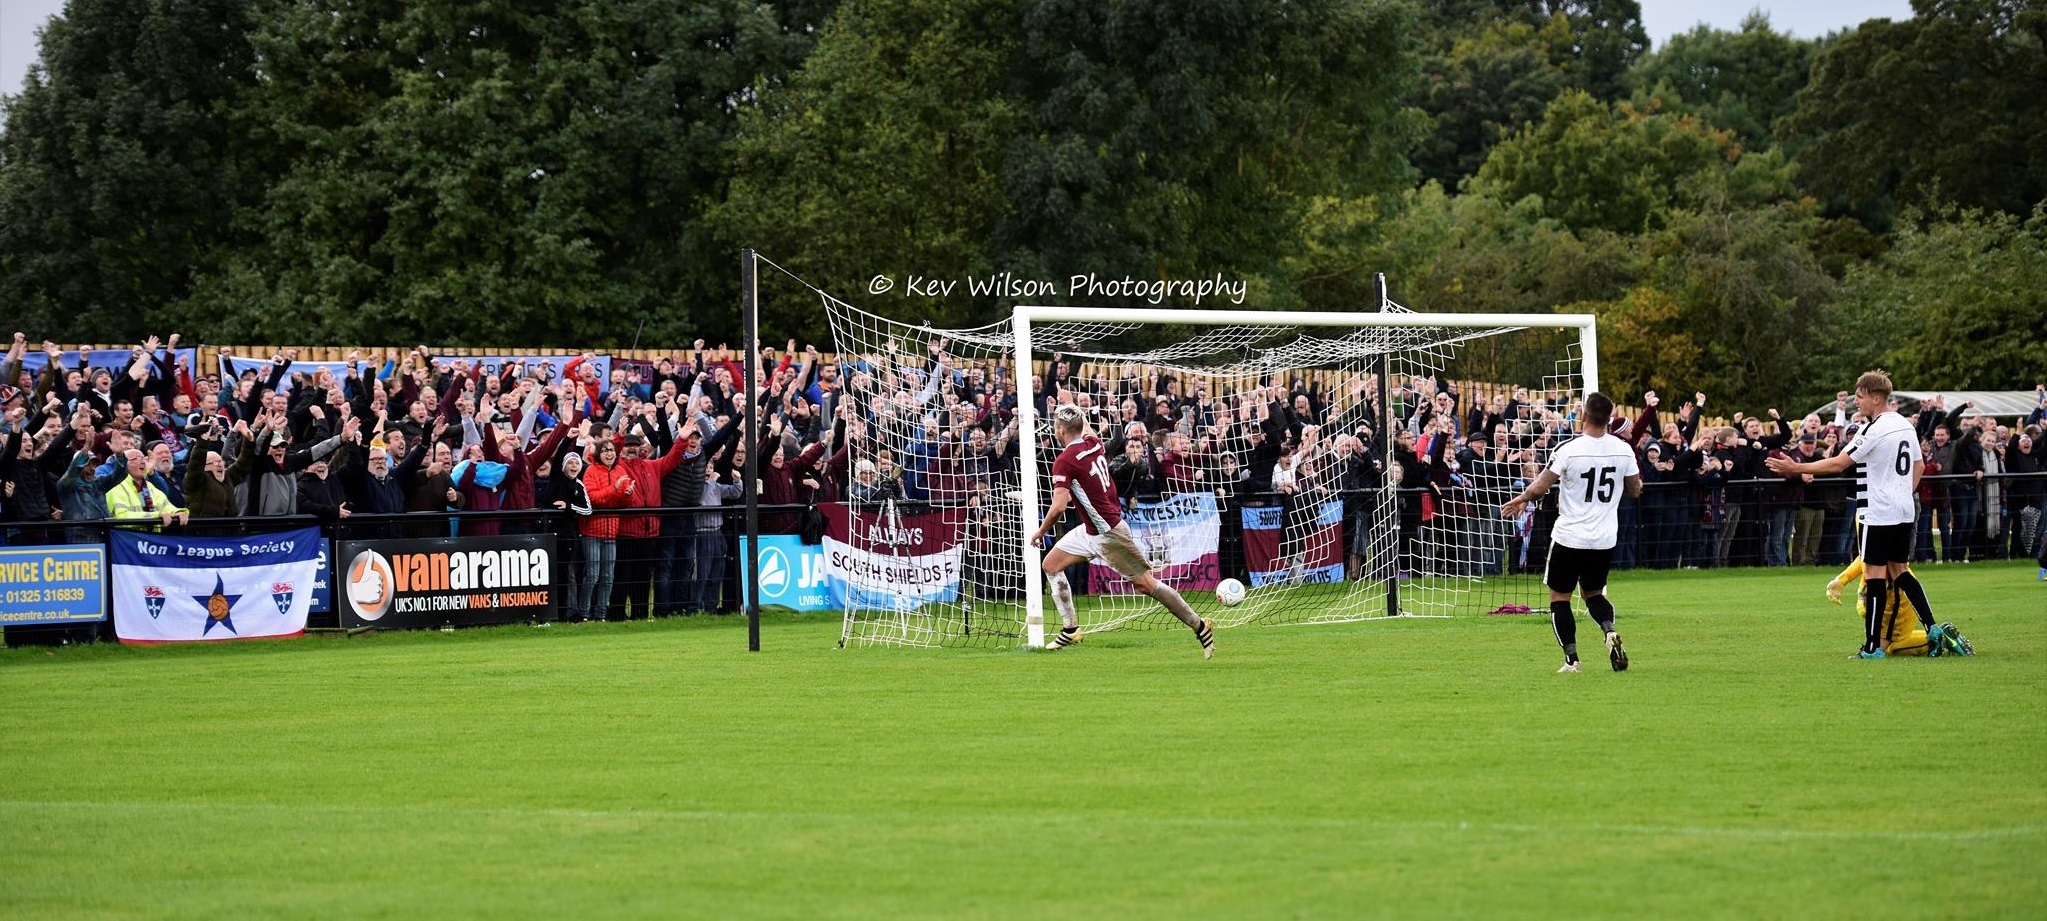 Darlington 0-3 South Shields: Terrific FA Cup triumph for Mariners